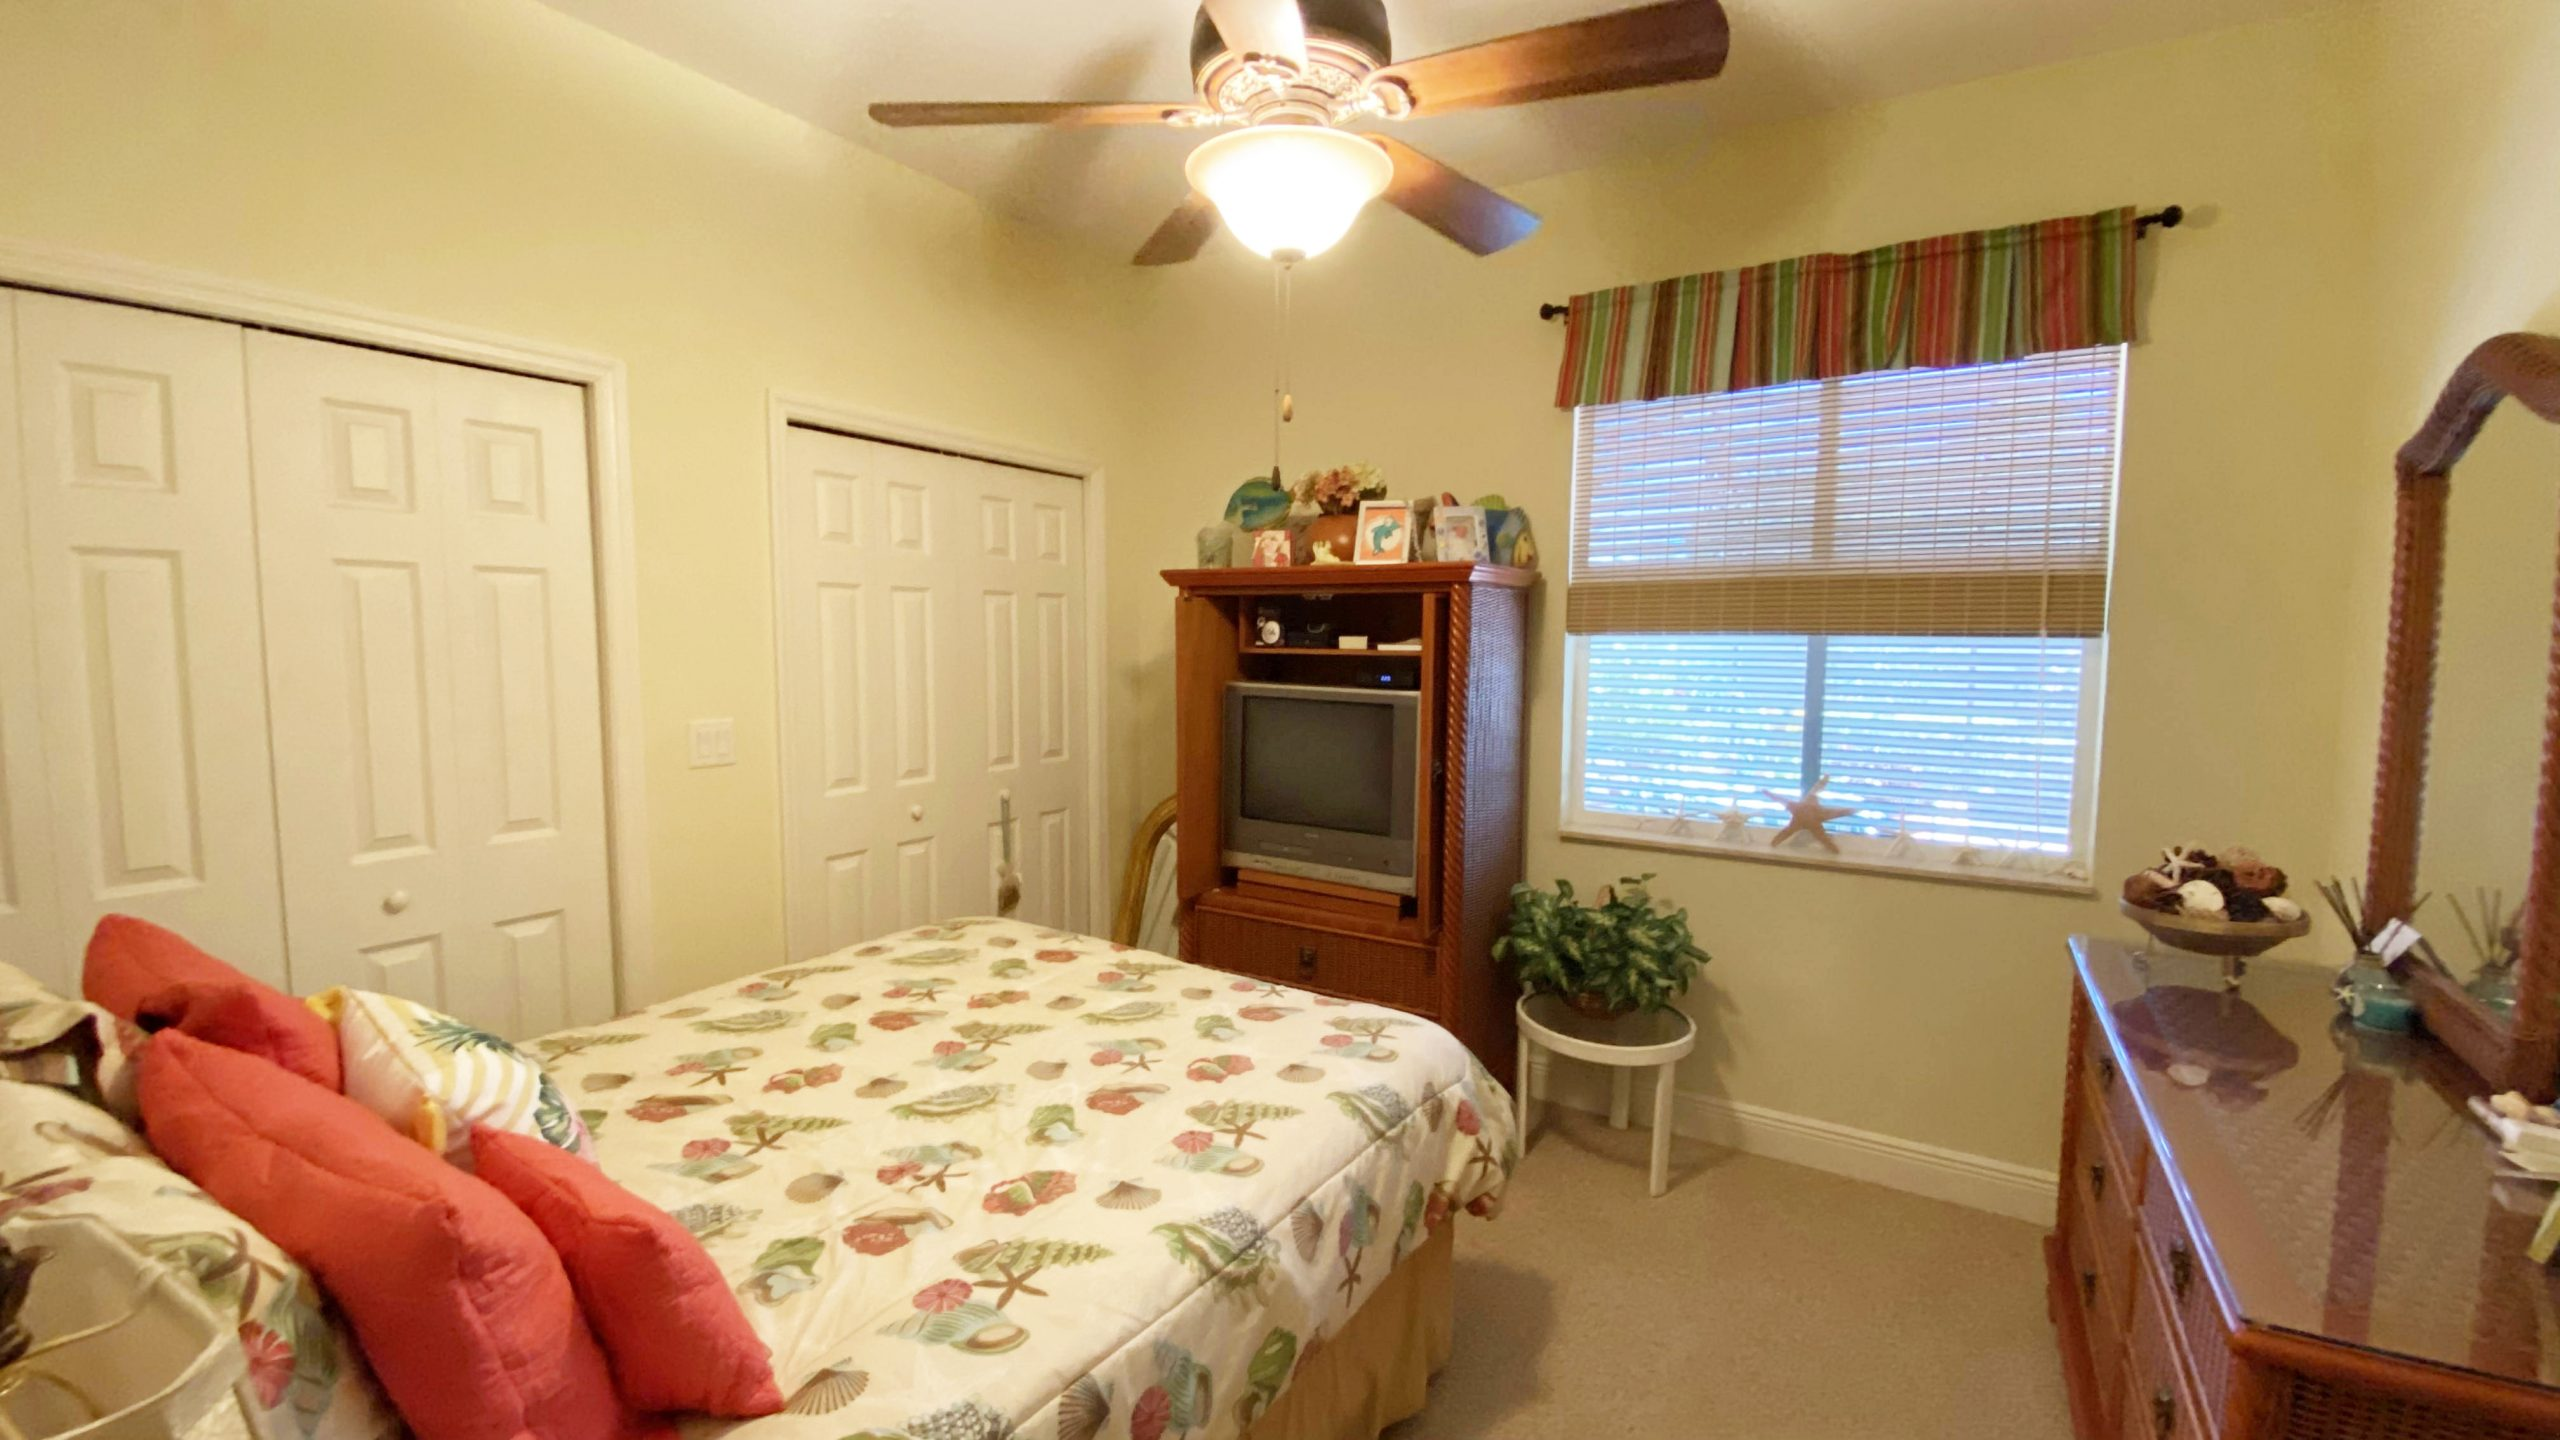 Pool home bedroom Venice Florida